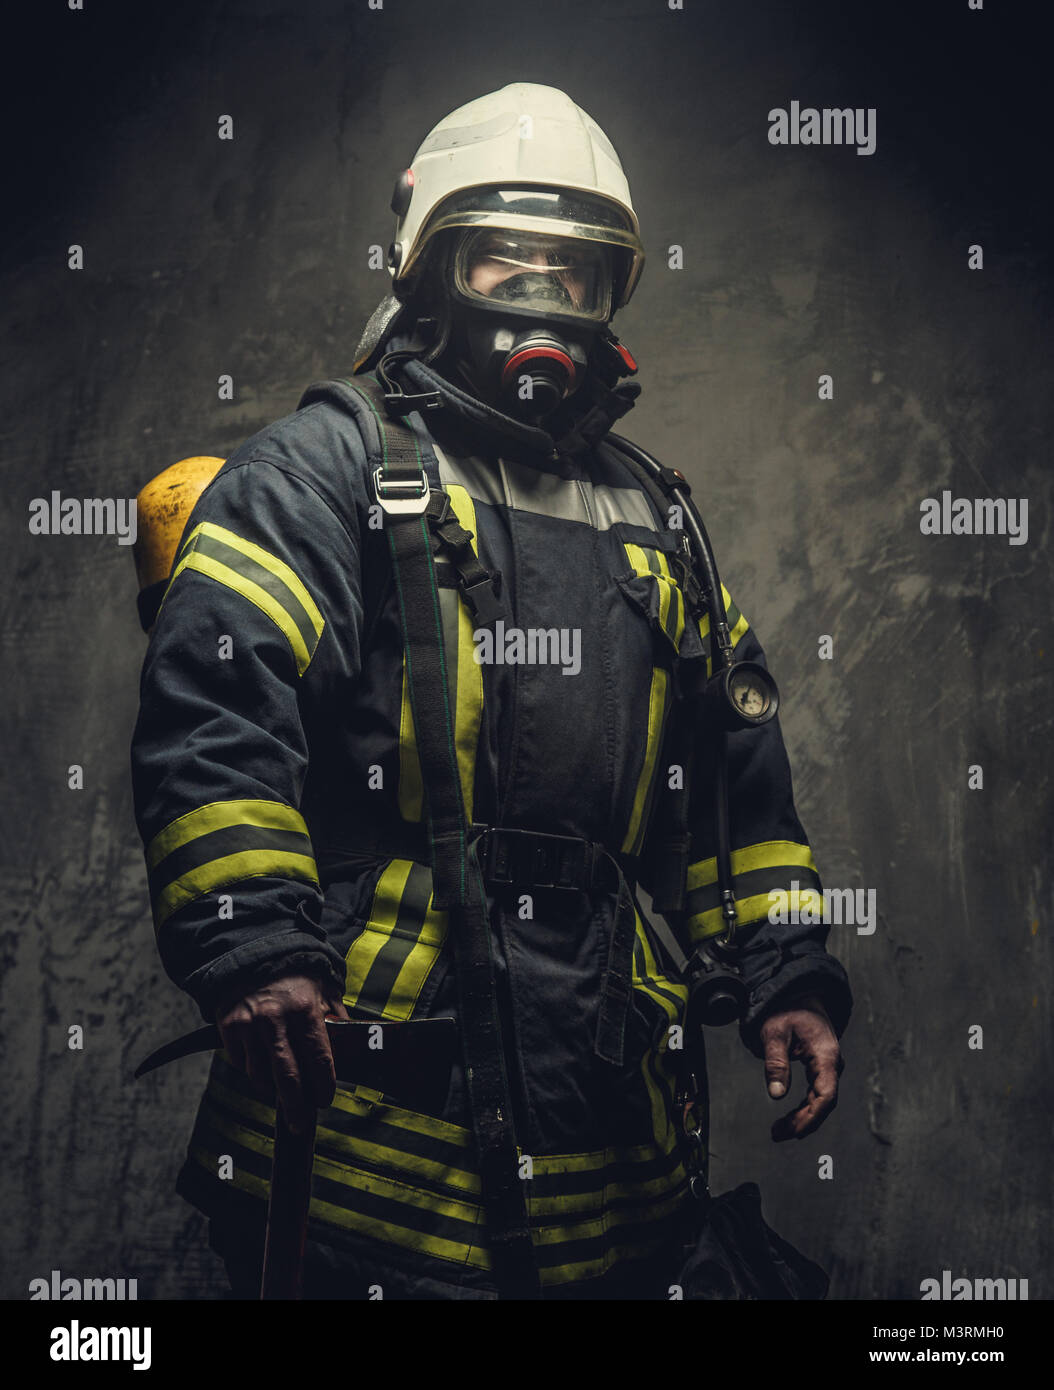 Portrait of firefighter in oxygen mask. - Stock Image